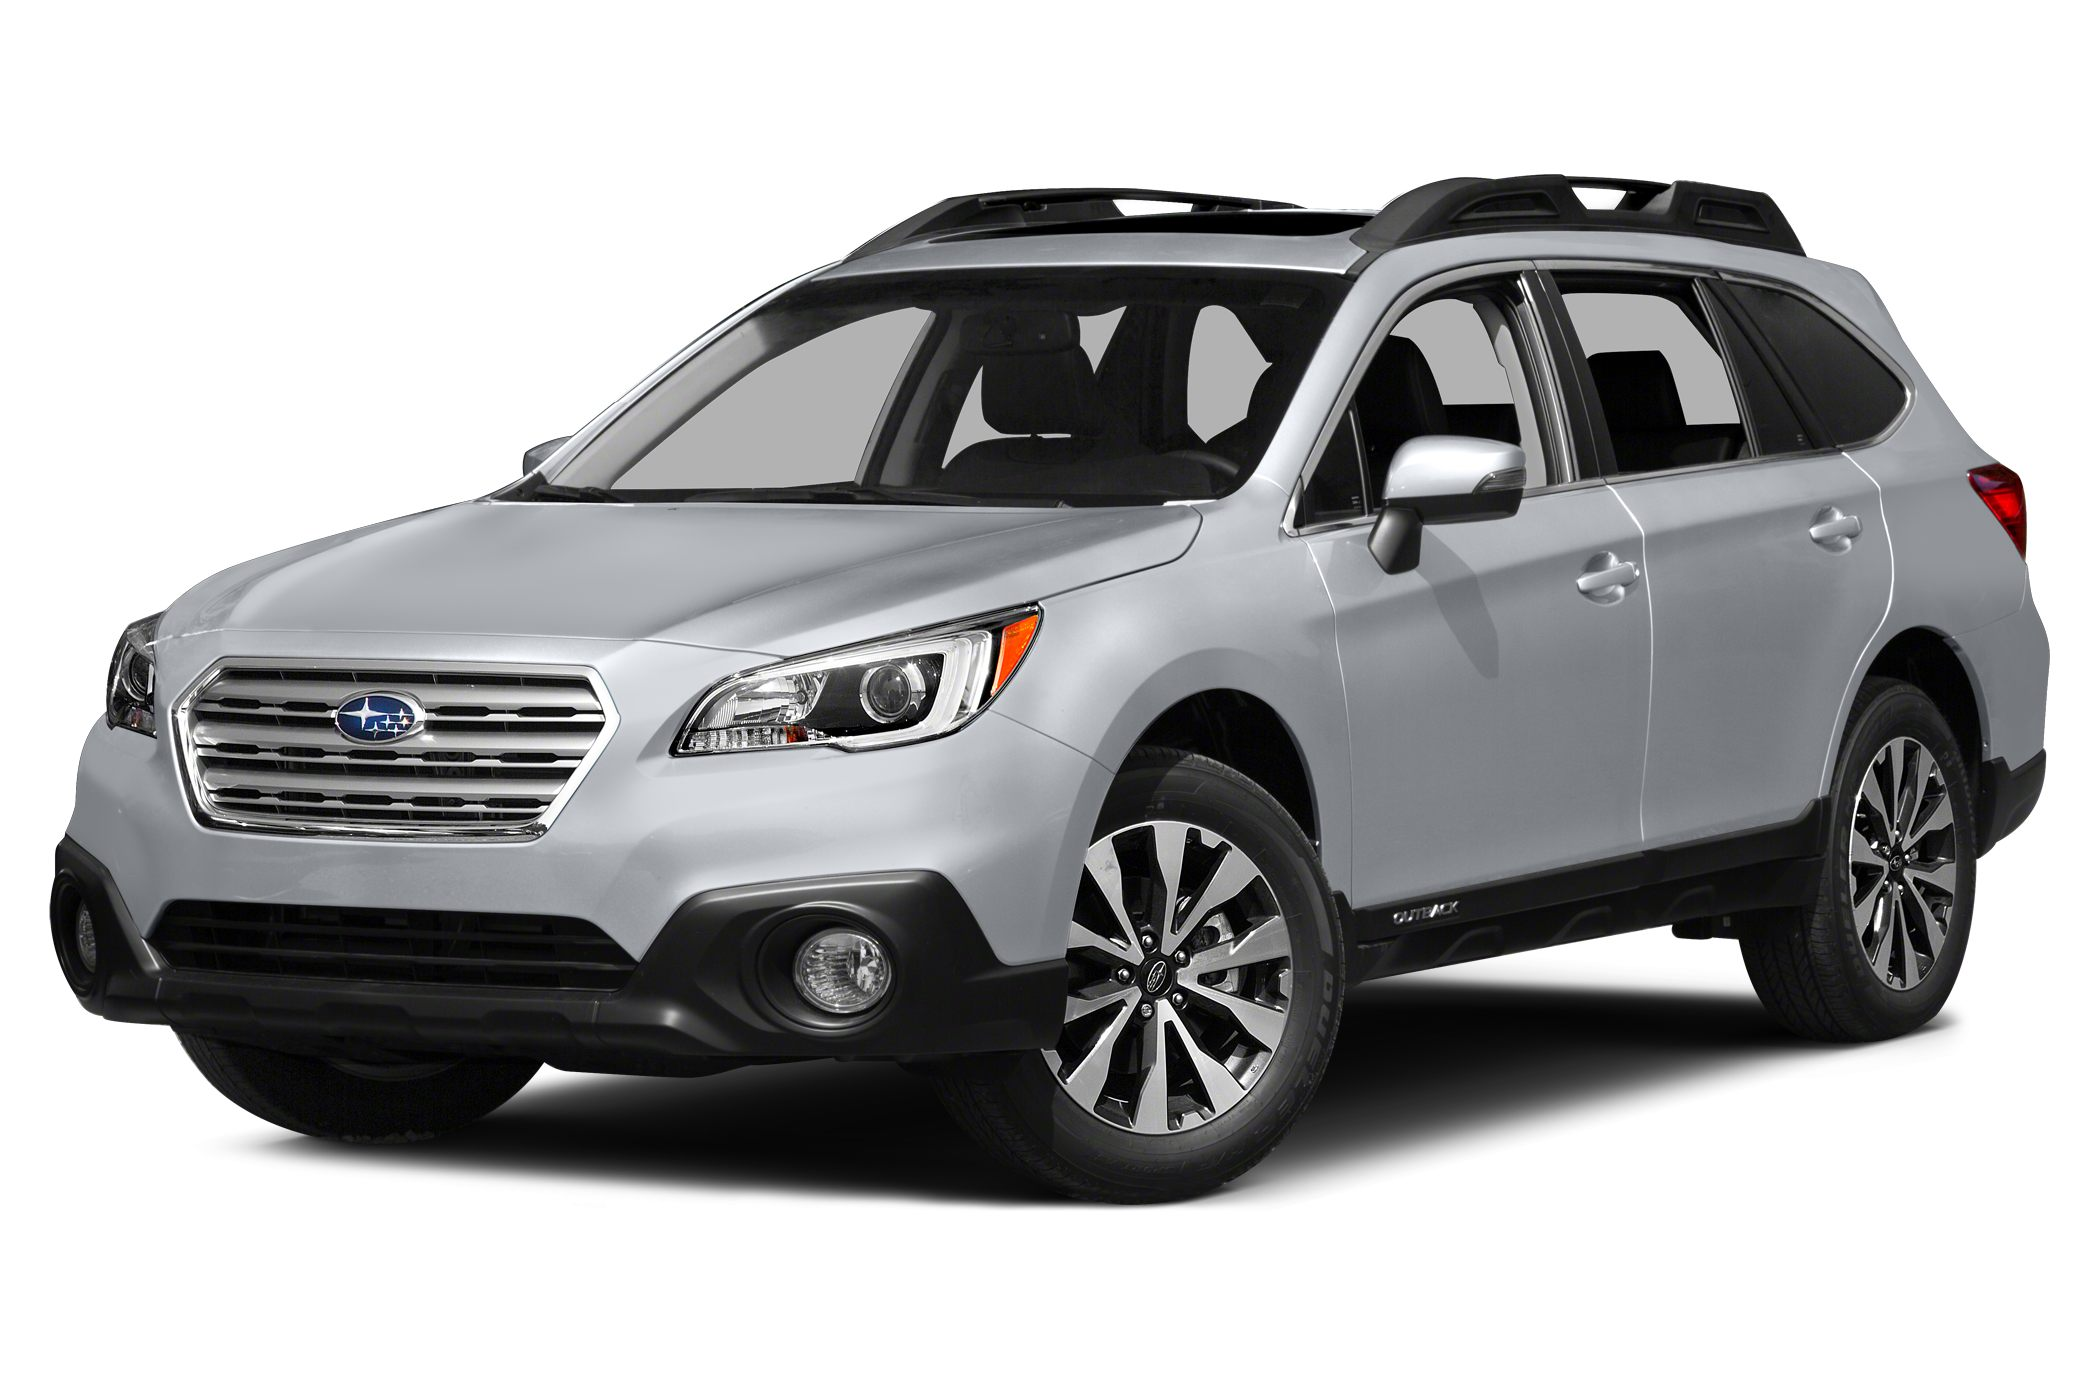 2015 Subaru Outback 2.5i Limited Wagon for sale in Carson City for $31,145 with 10 miles